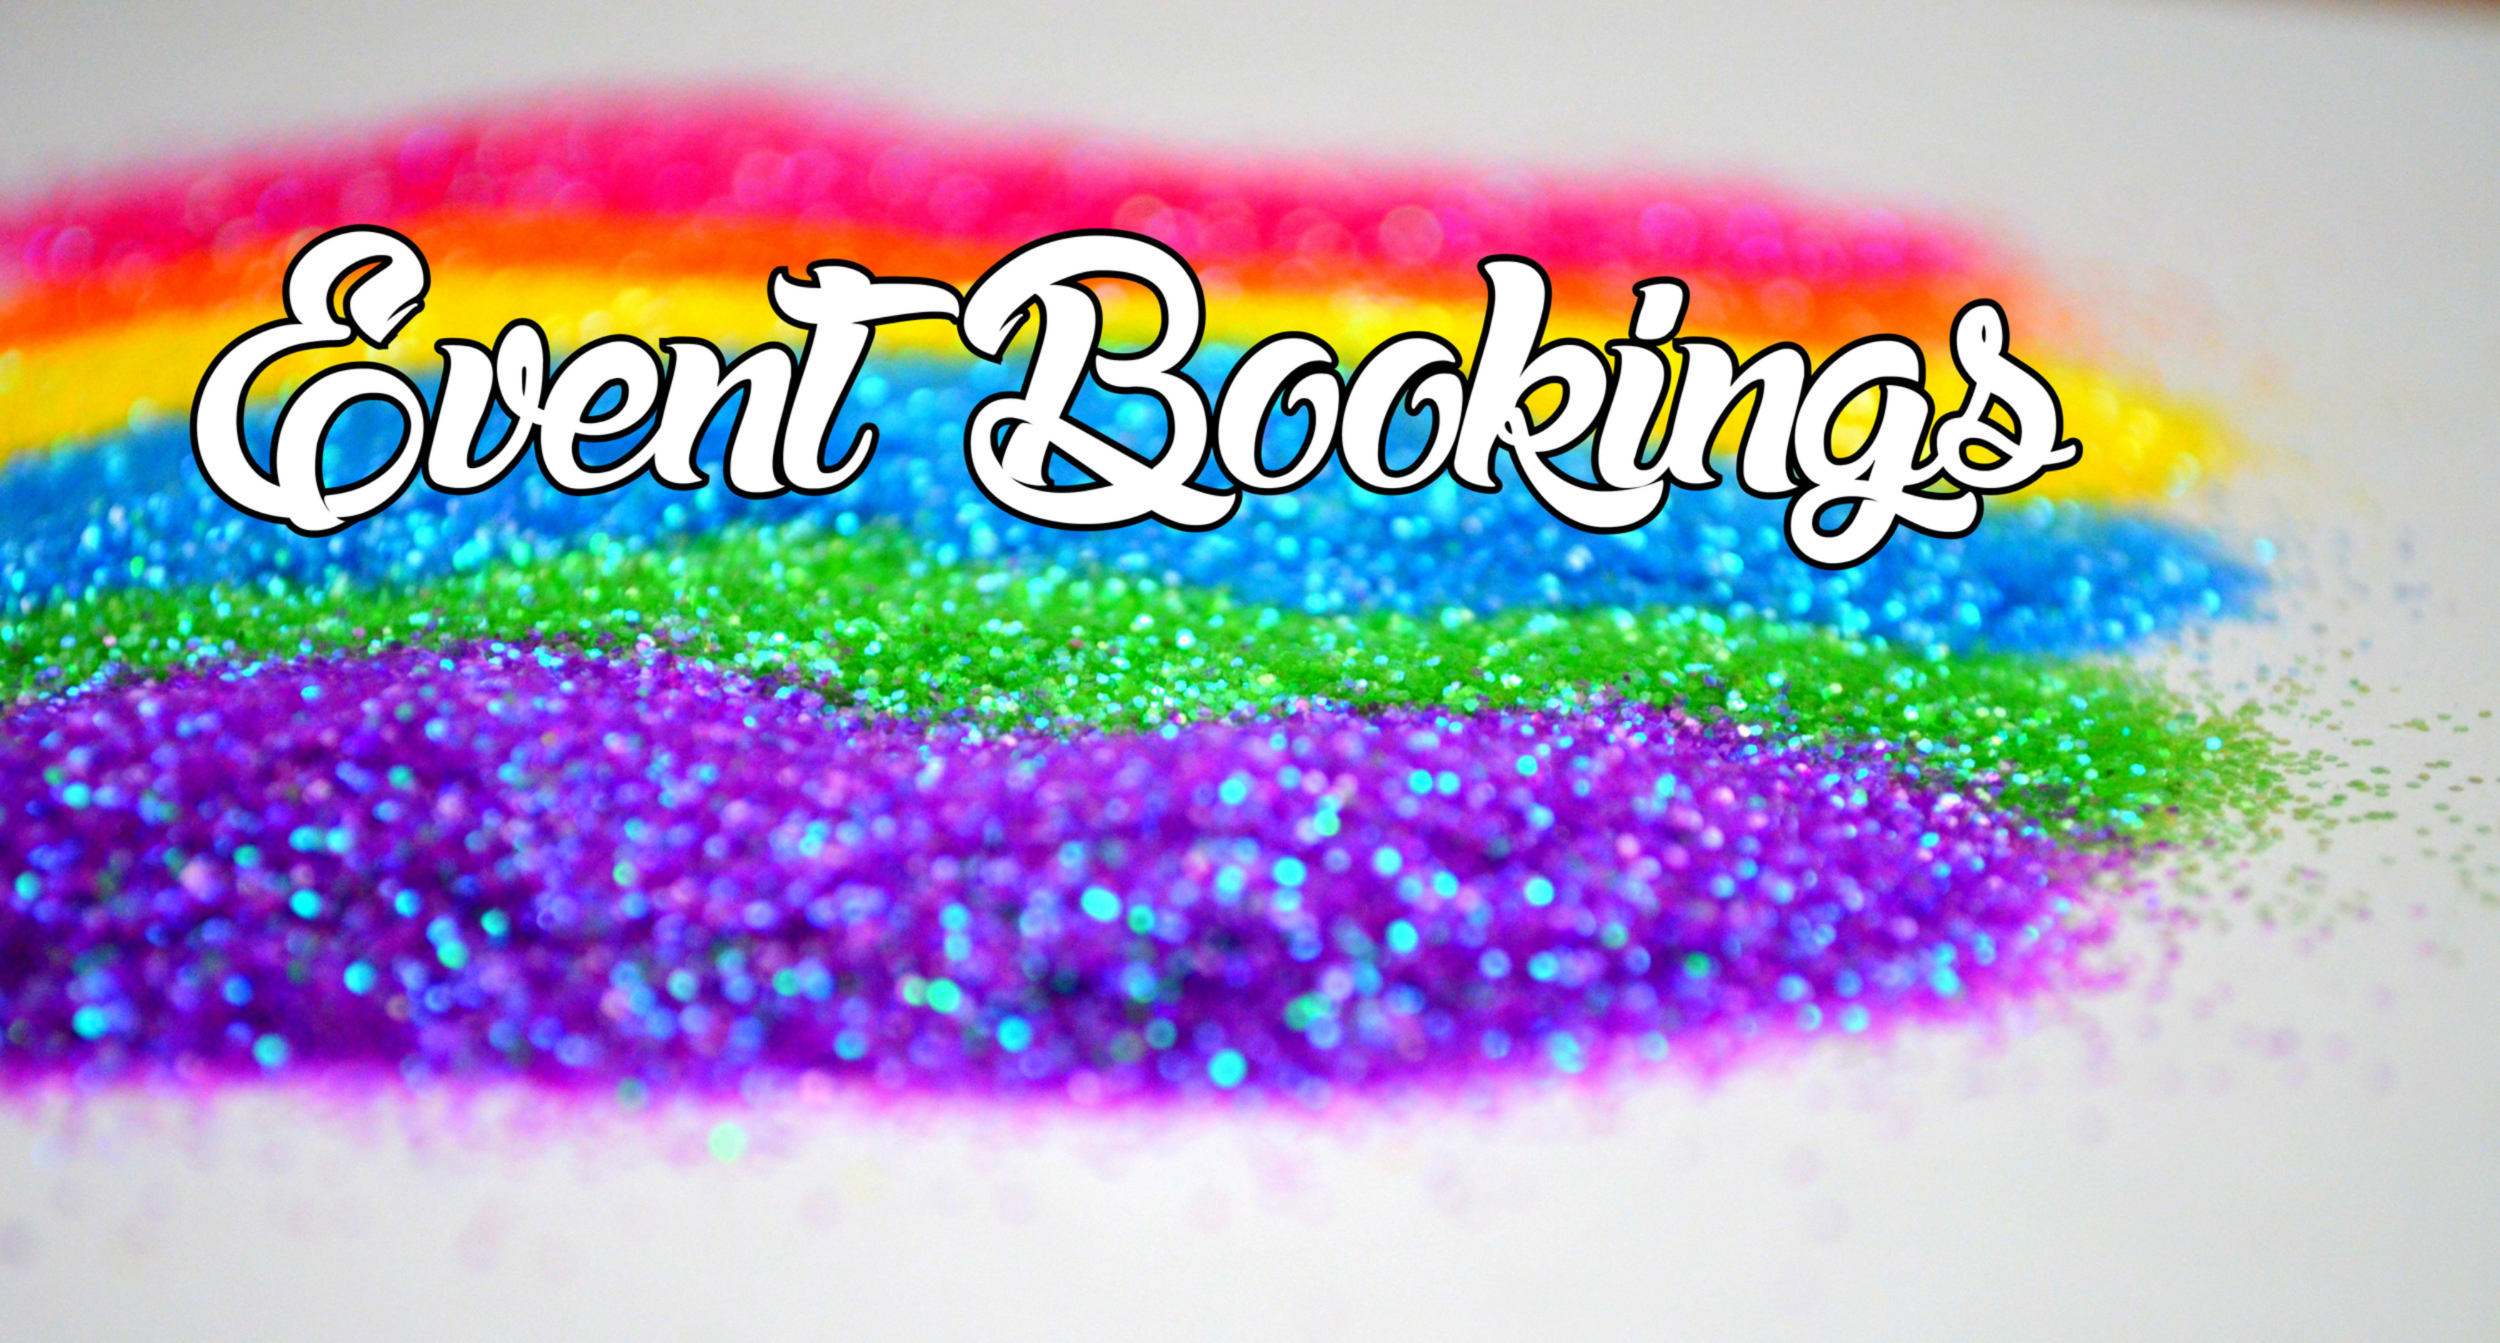 Event Bookings for Exclaim Entertainment